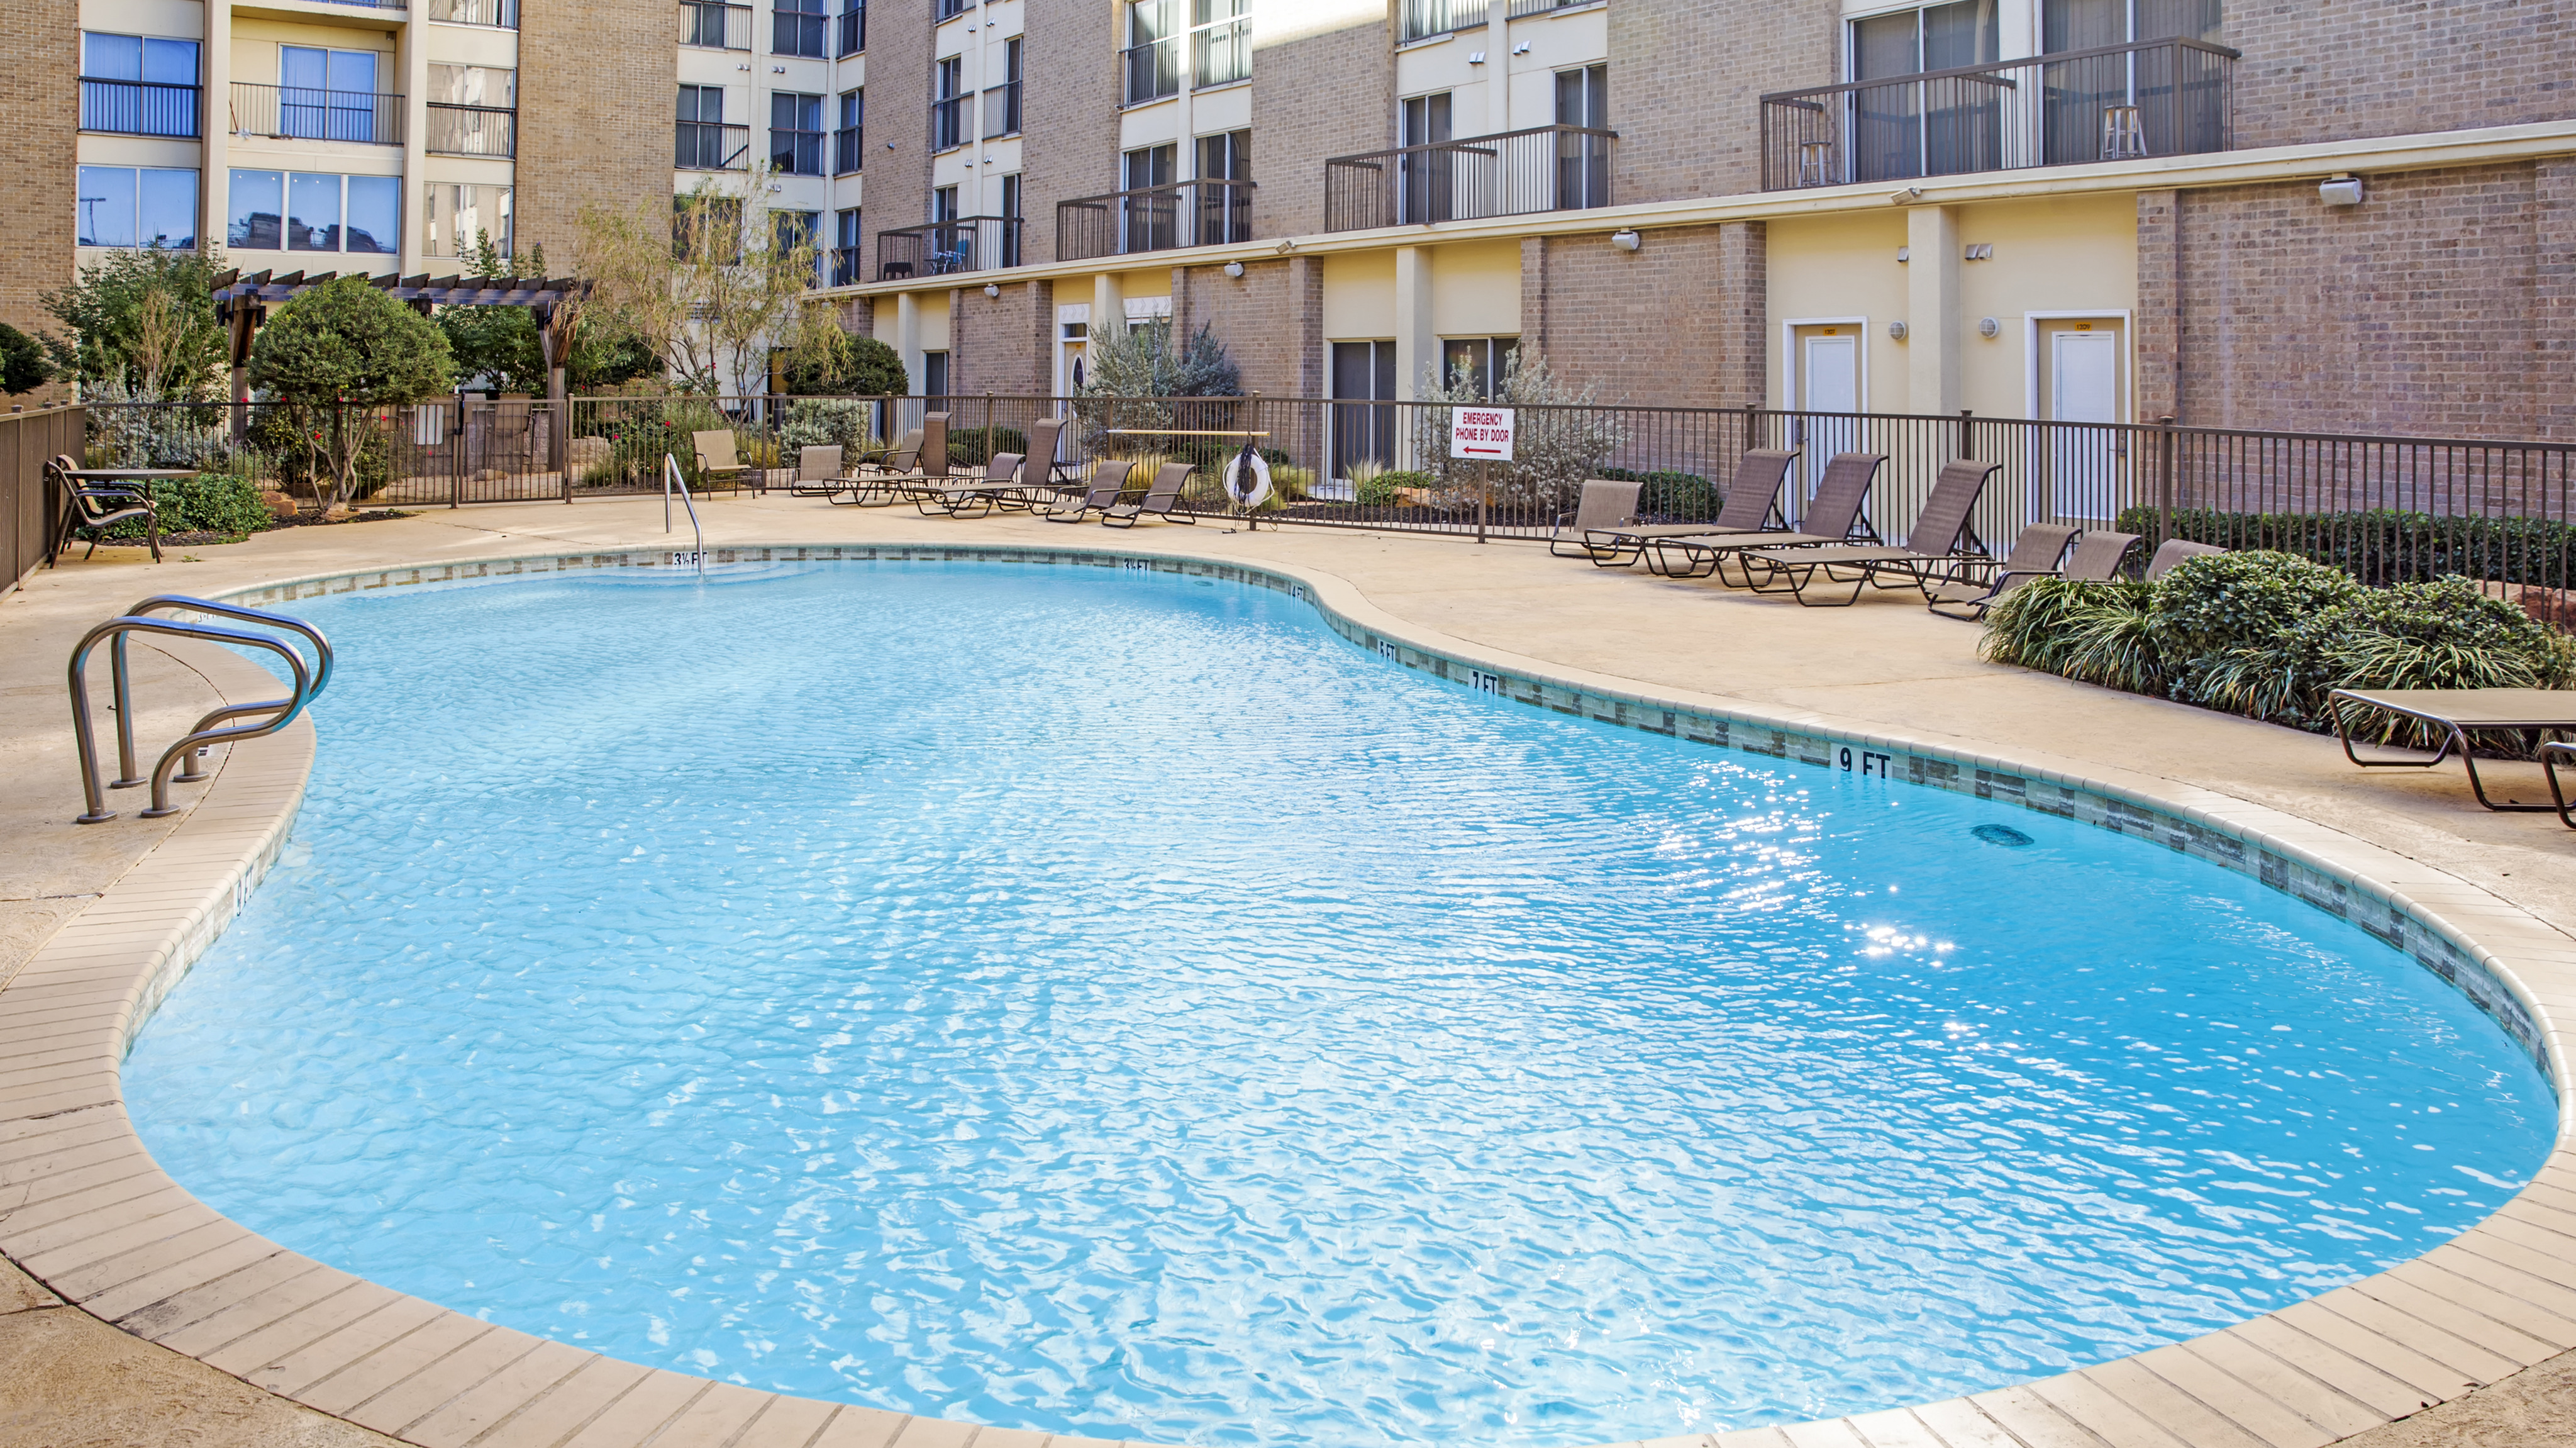 Image of Resort-Style Swimming Pool for ULofts Apartments